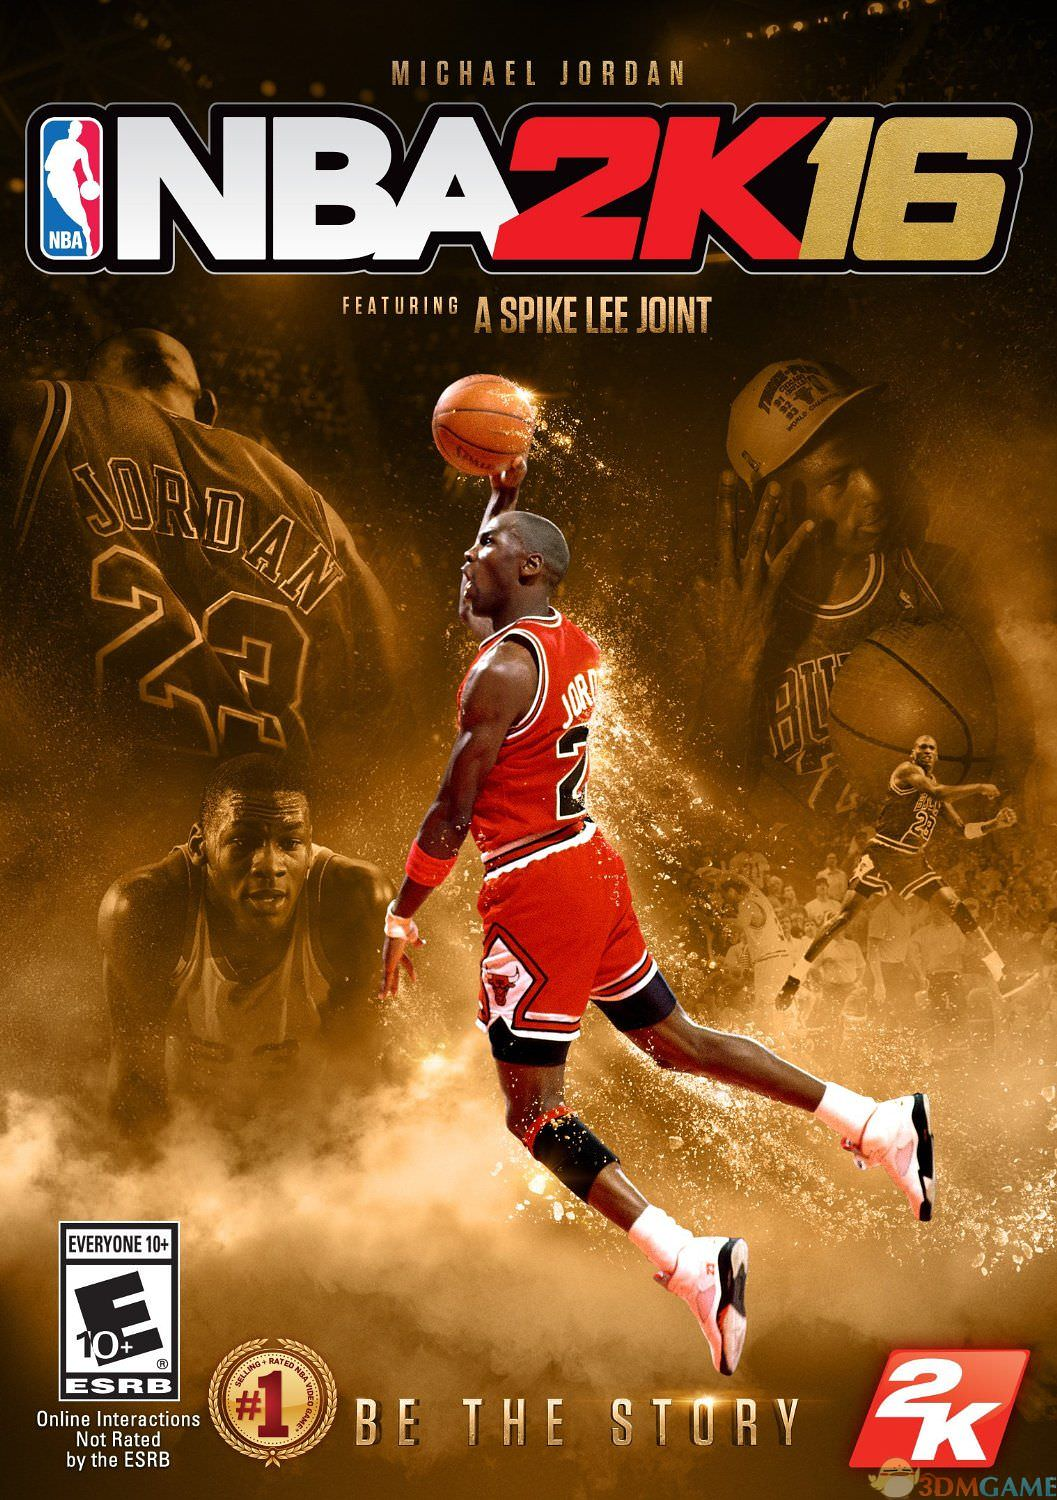 Download NBA 2k16 Full Game Free PC (Michael Jordan Edition - 3DM Cracked)